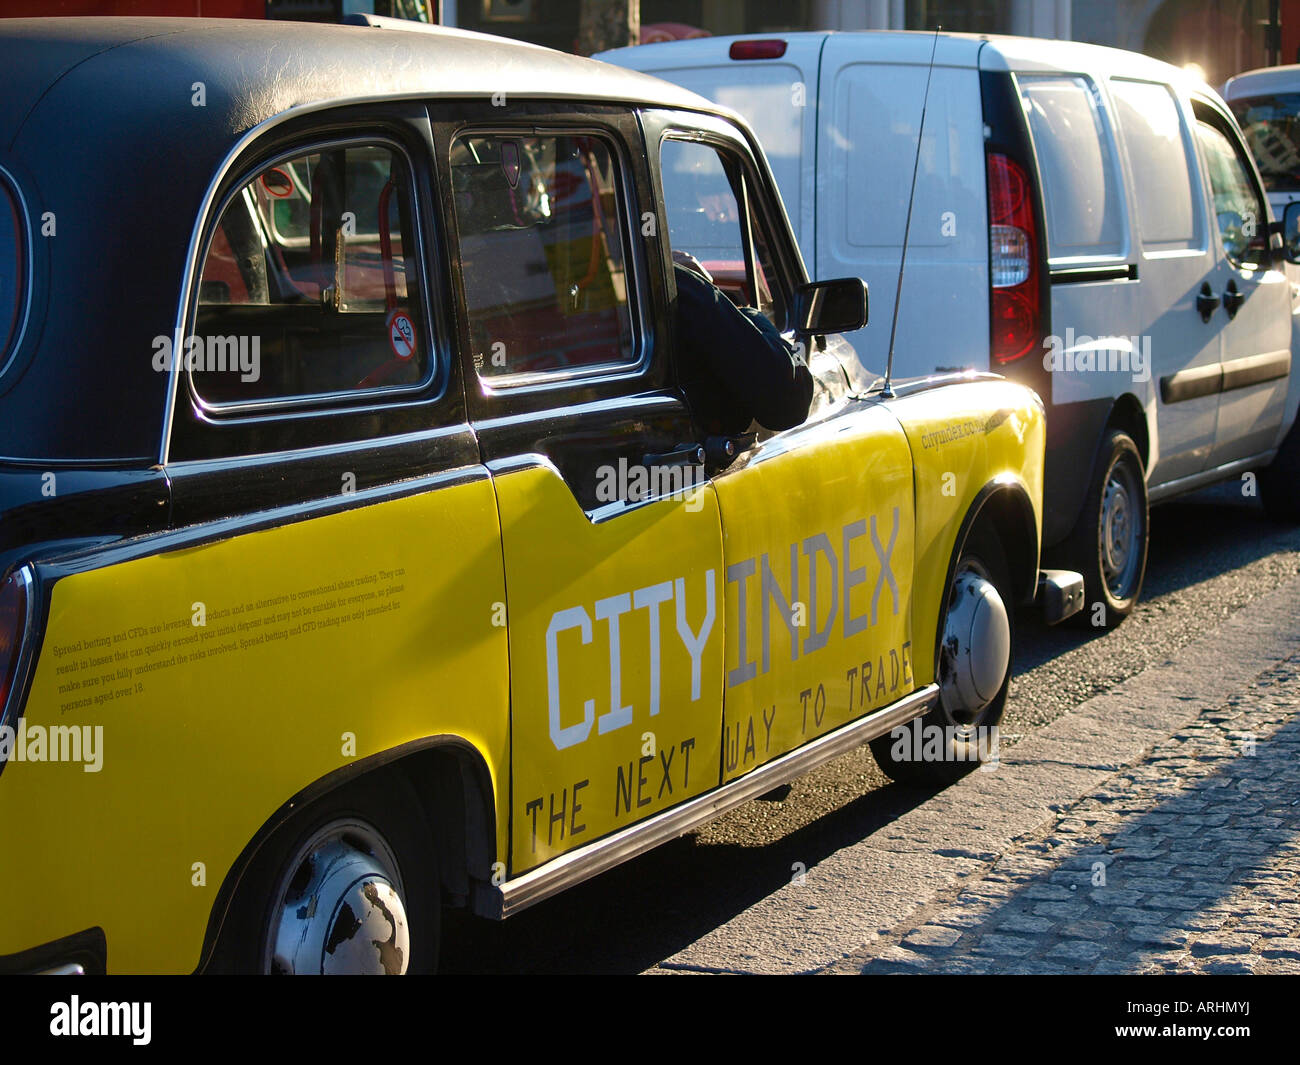 london taxi cab sign london england uk gb eu europe stock photo royalty free image 16060229. Black Bedroom Furniture Sets. Home Design Ideas